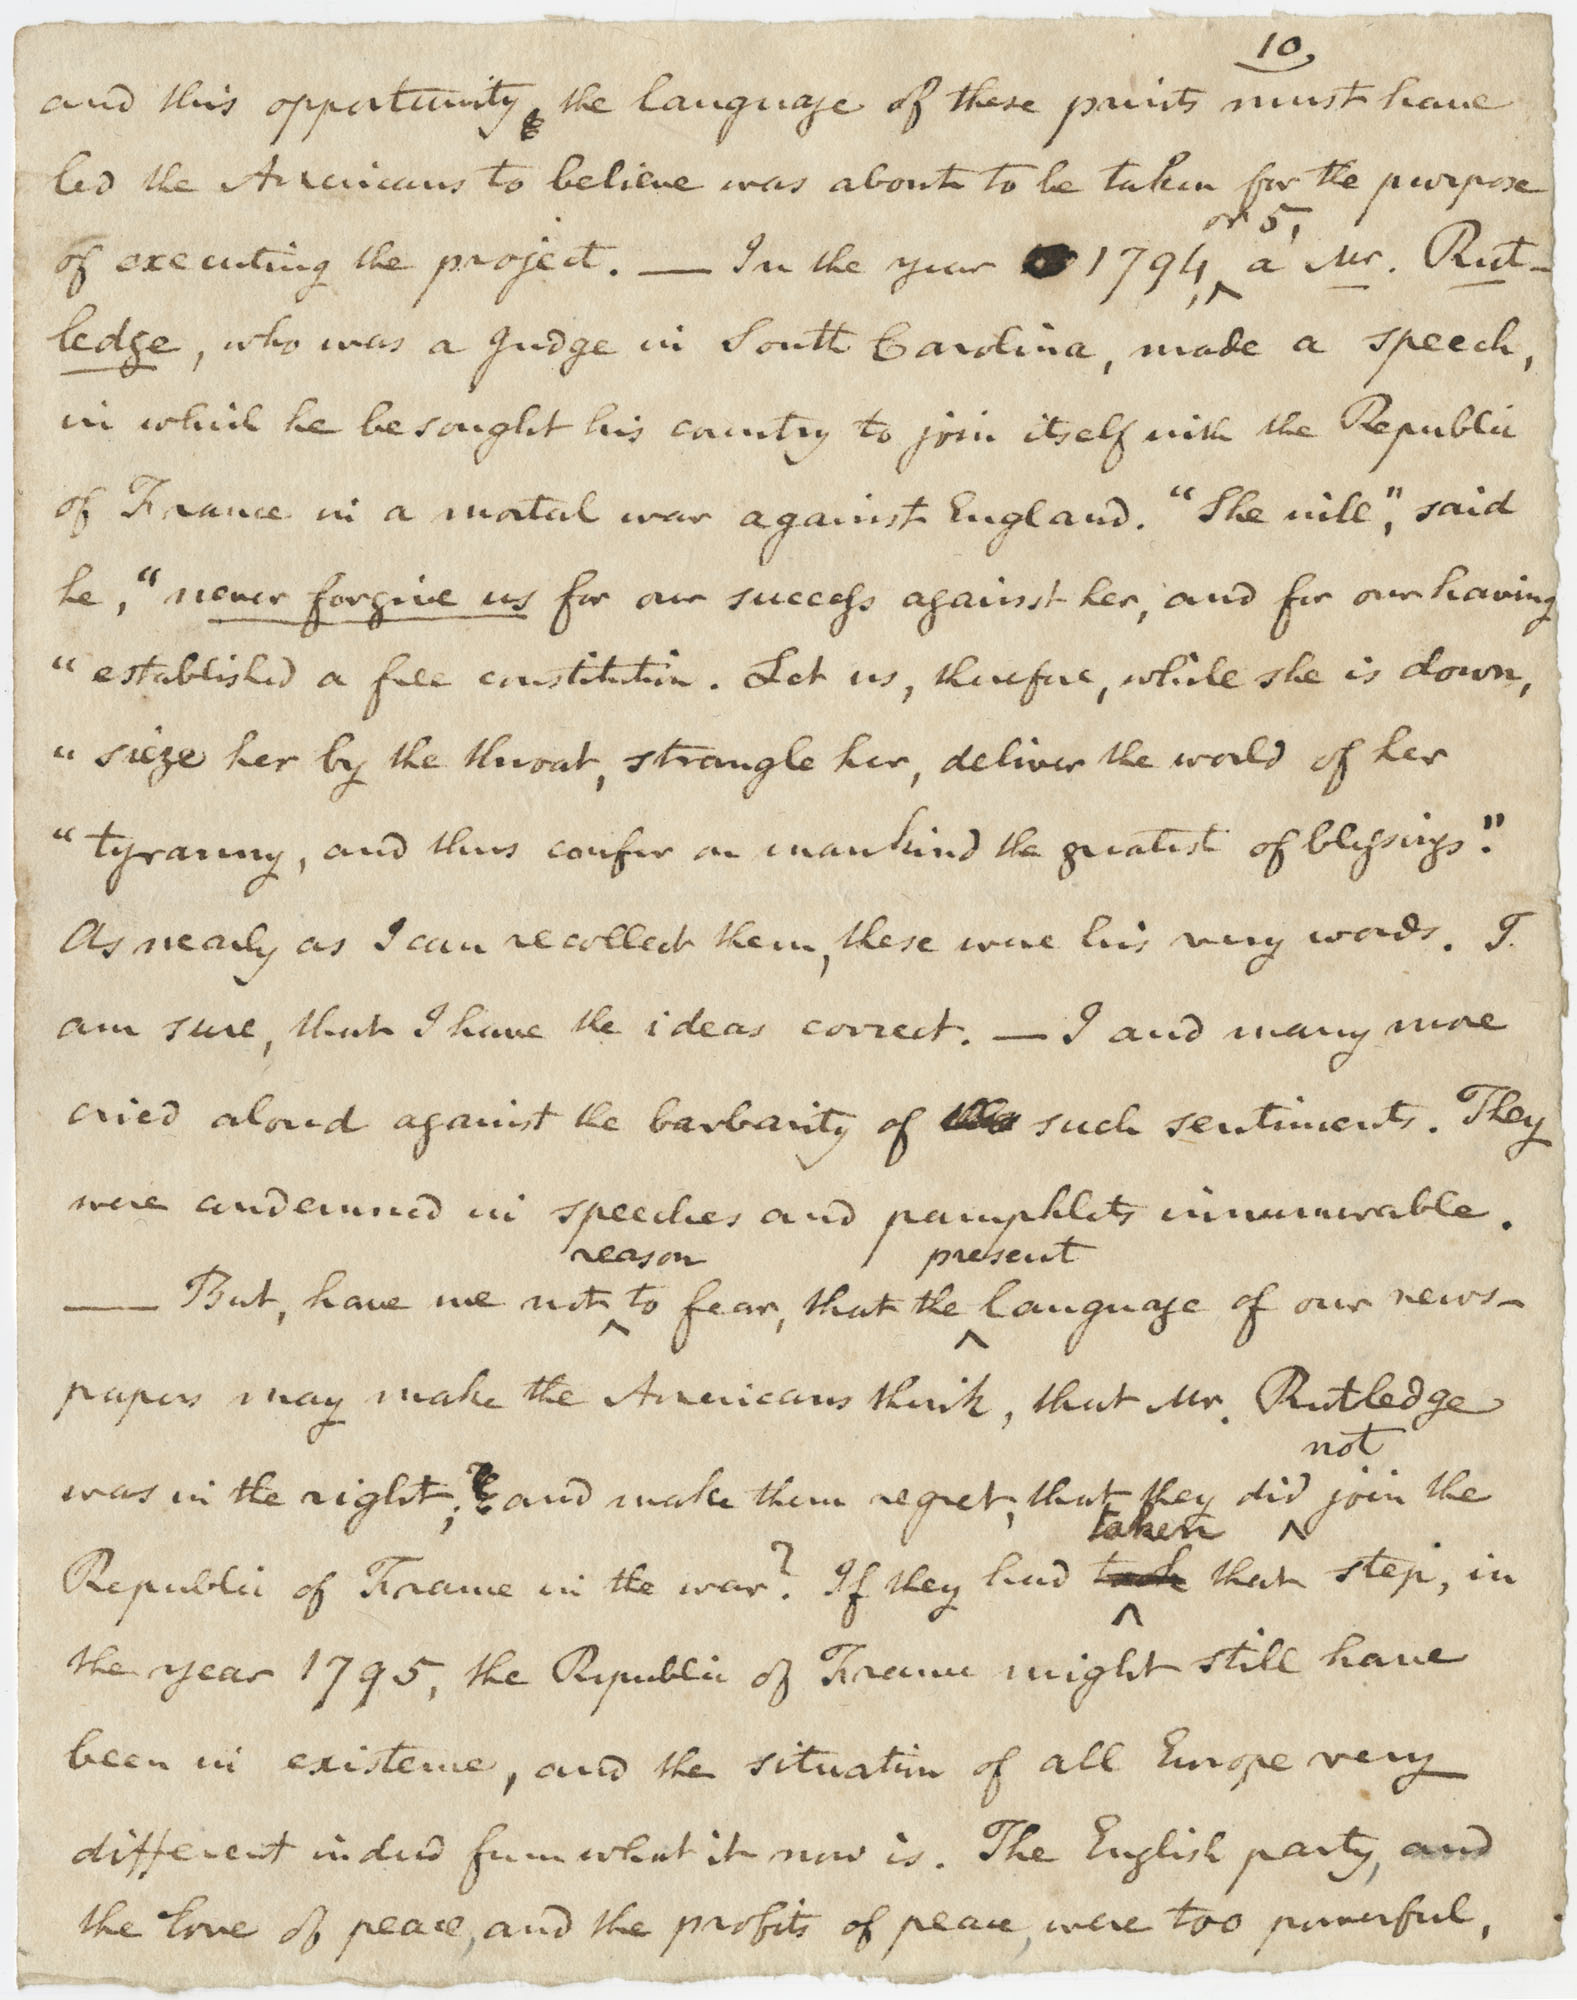 Thomas S. Grimke Autograph Collection, autograph of William Cobbett, English and American pamphleteer and reformer, undated